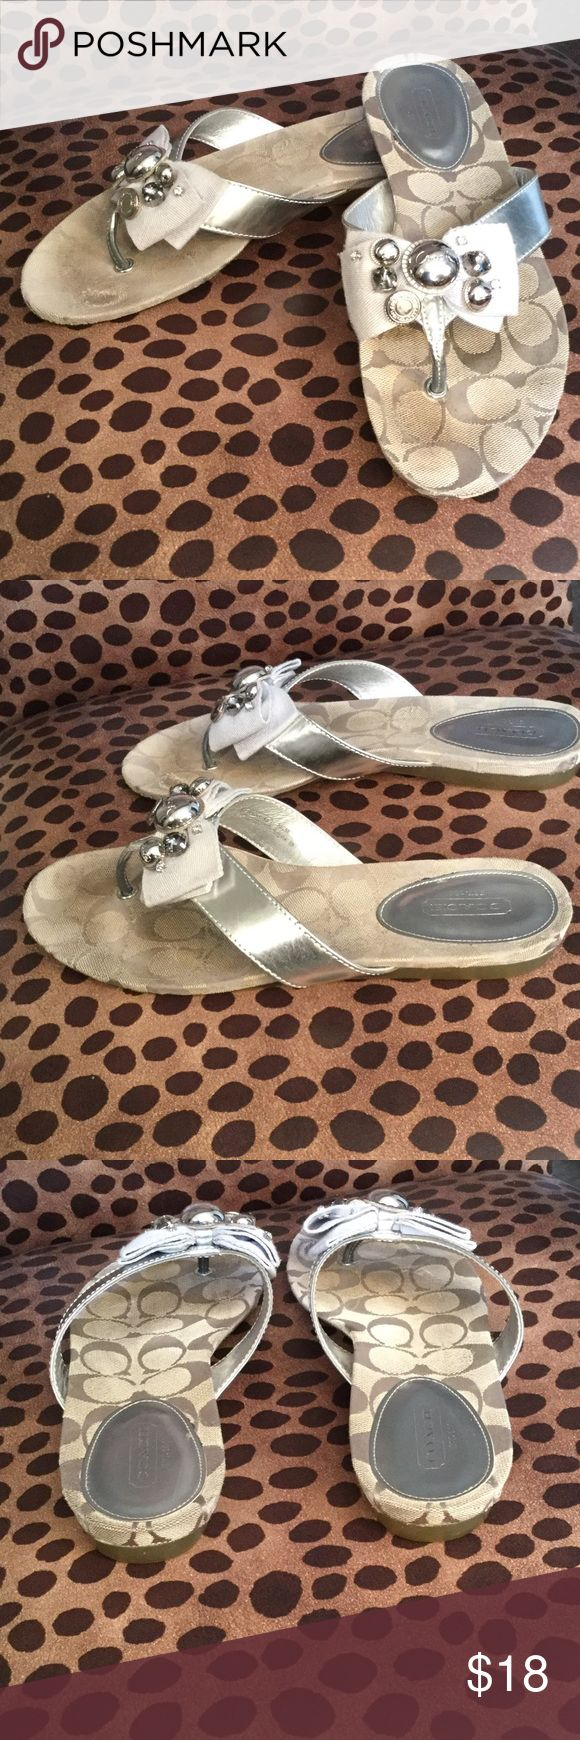 """COACH """"Sylvia"""" Flip Flop Silver Sandal COACH """"Sylvia"""" Silver/Gray Metallic Flip Flop Sandal size 8. These are preowned showing signs of wear. I took pics of all angles to show exactly what you're receiving. A tailored bow with sparkling jewels and shiny rivets updates a classic thong sandal, crafted in glossy patent leather and signature fabric with a barely-there wedge and a non-skid rubber sole. Coach Shoes Sandals"""